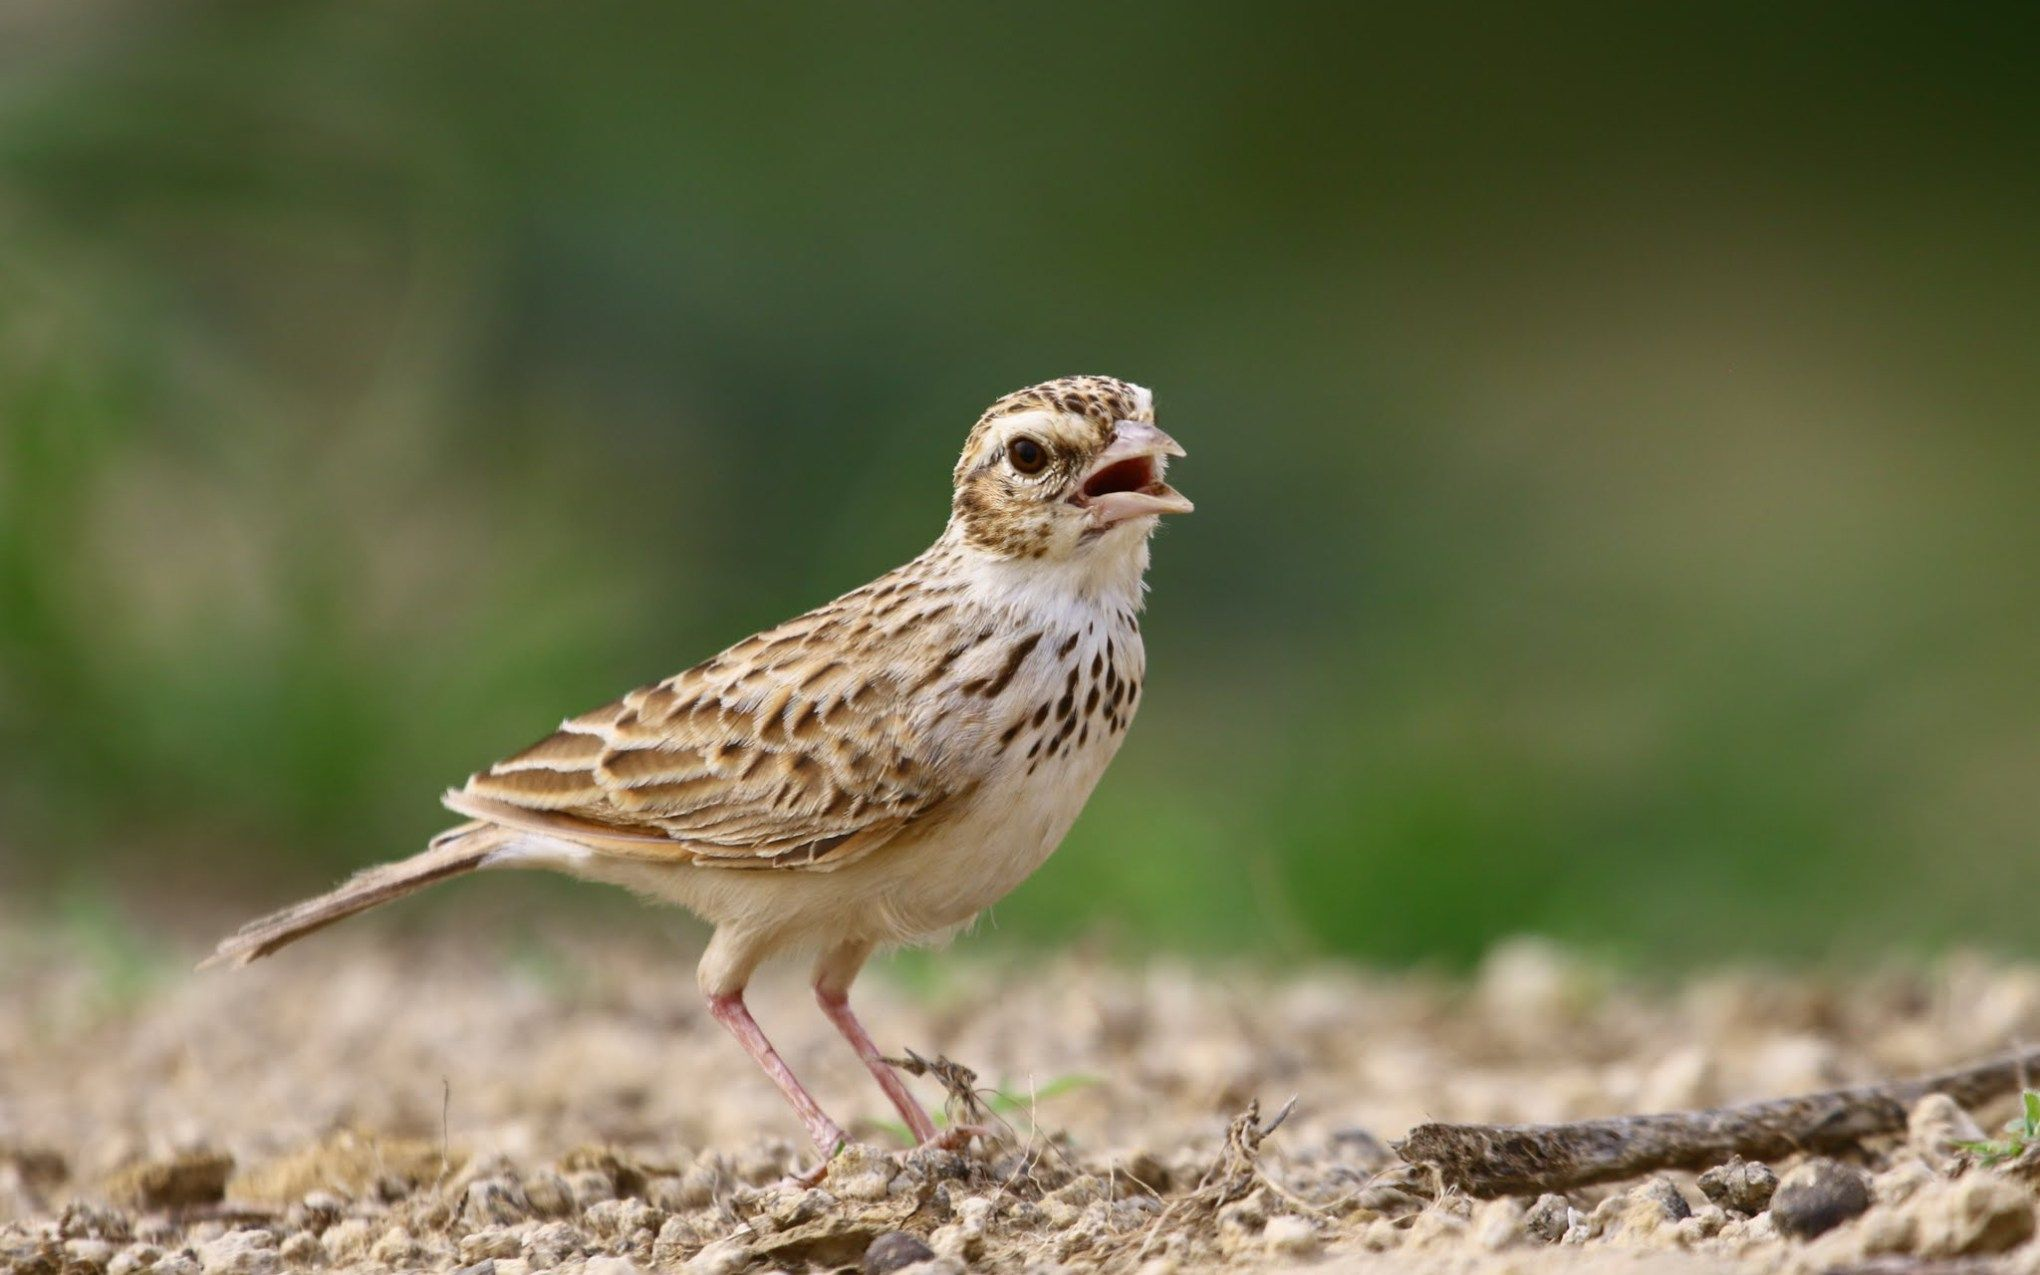 Indian Bush Lark Tiny Bird Download Hd Desktop Mobile Wallpaper And Background Images Ultra Fine Full Digital Art Photography Selling Paintings Still Life Art